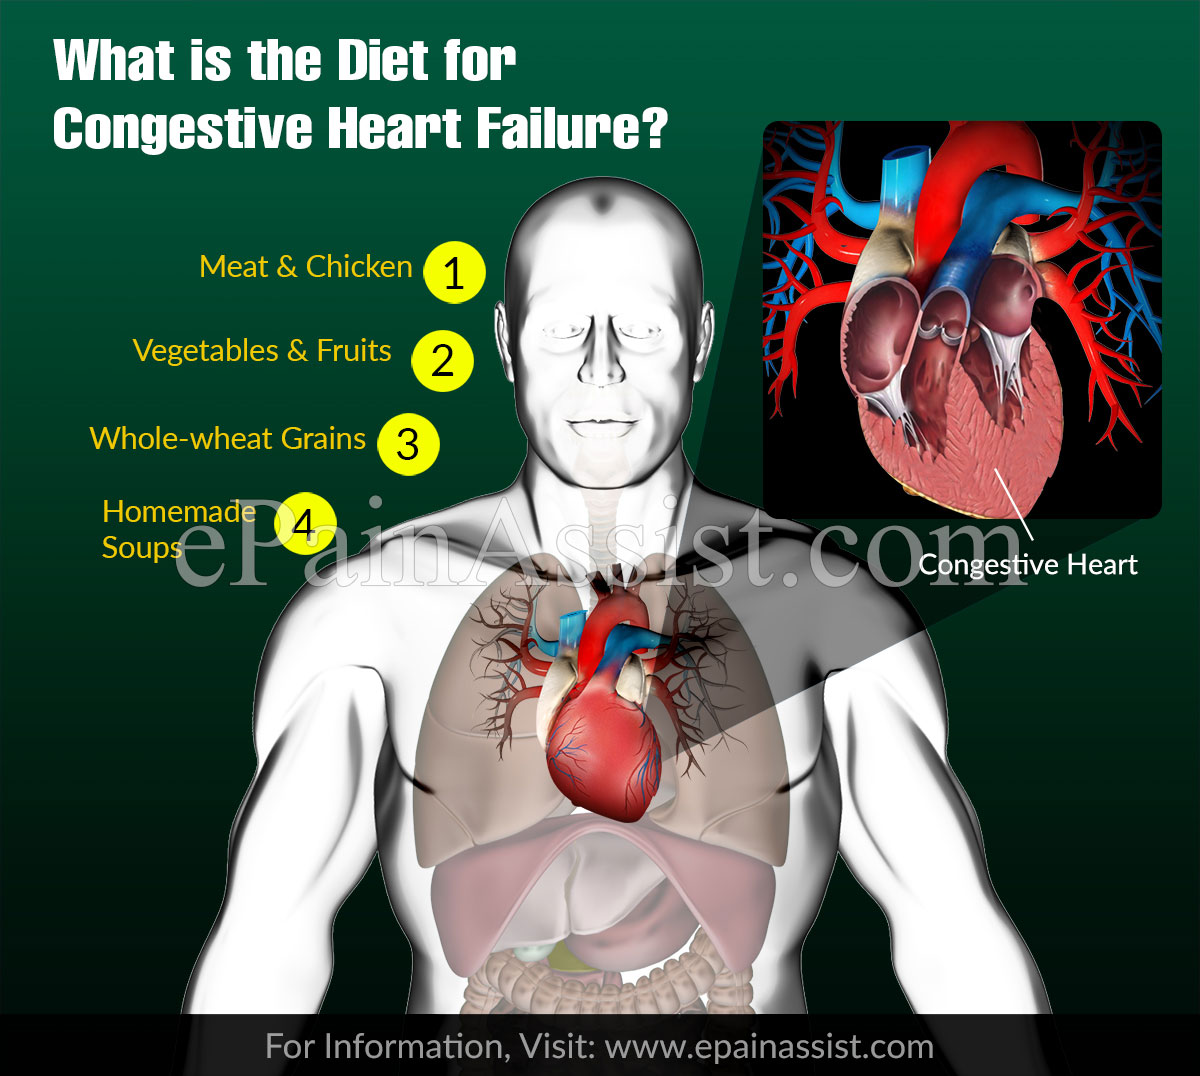 What is the Diet for Congestive Heart Failure?